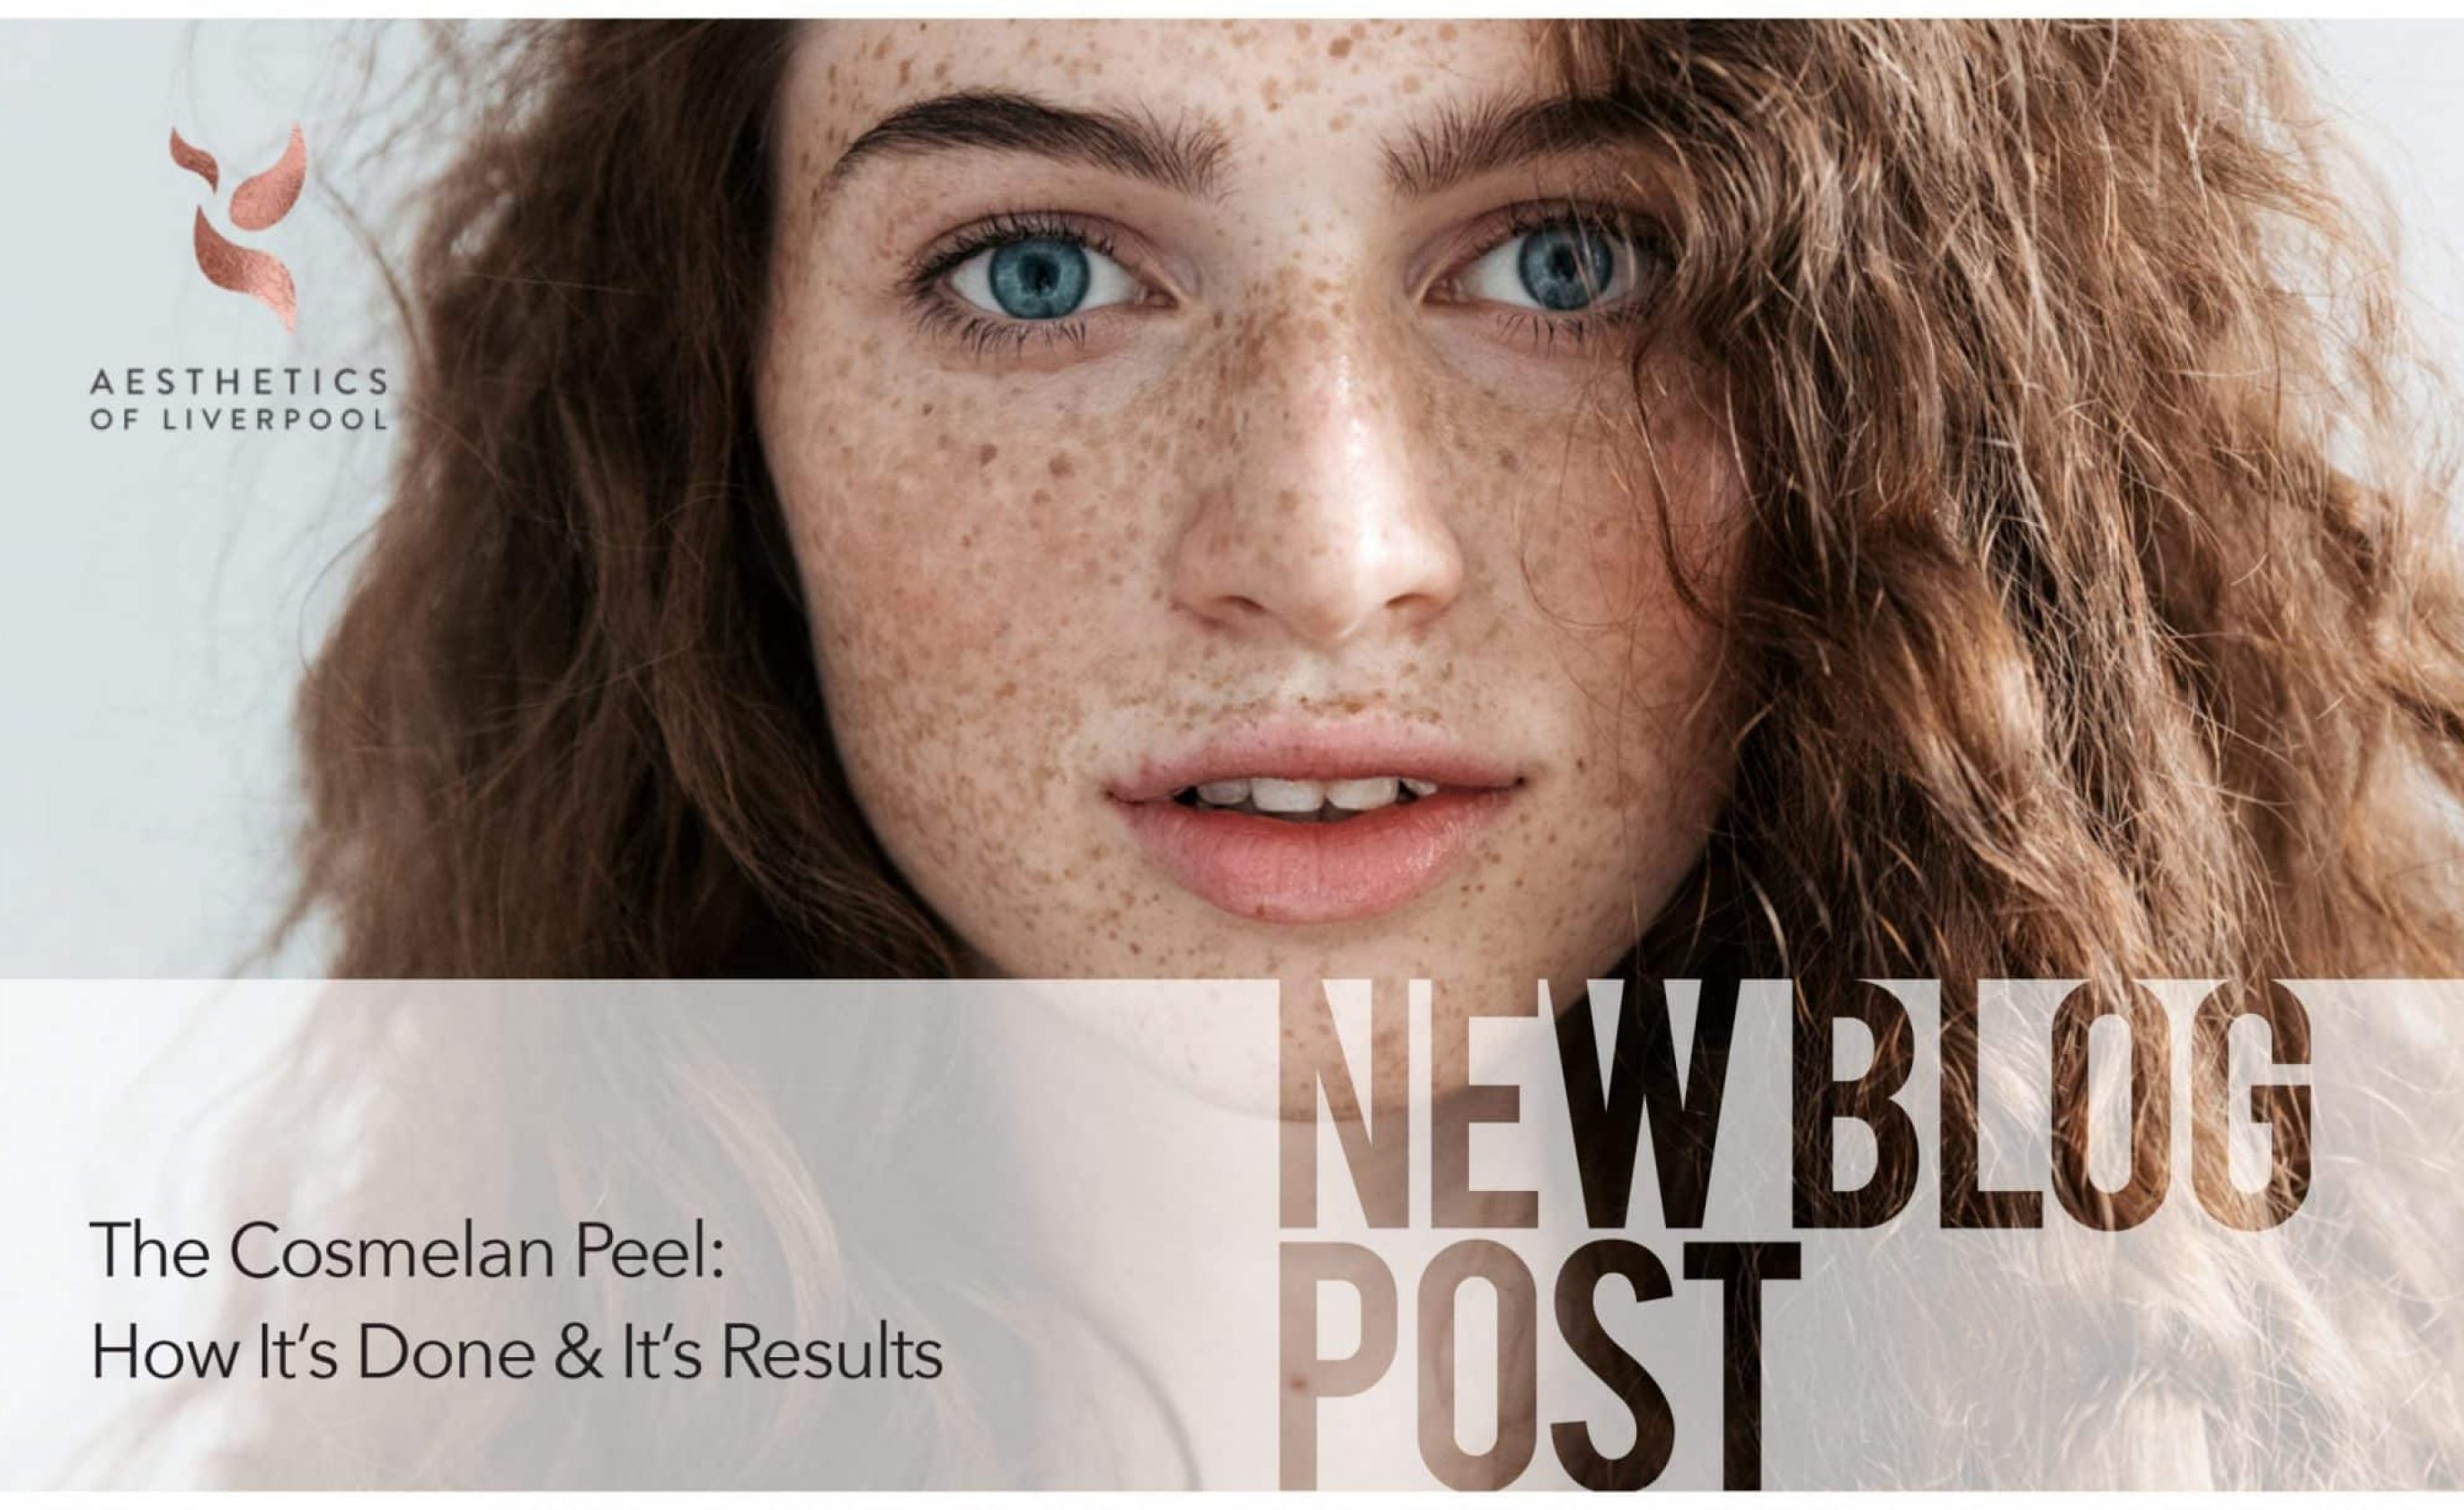 The Cosmelan Peel: How It's Done and It's Results